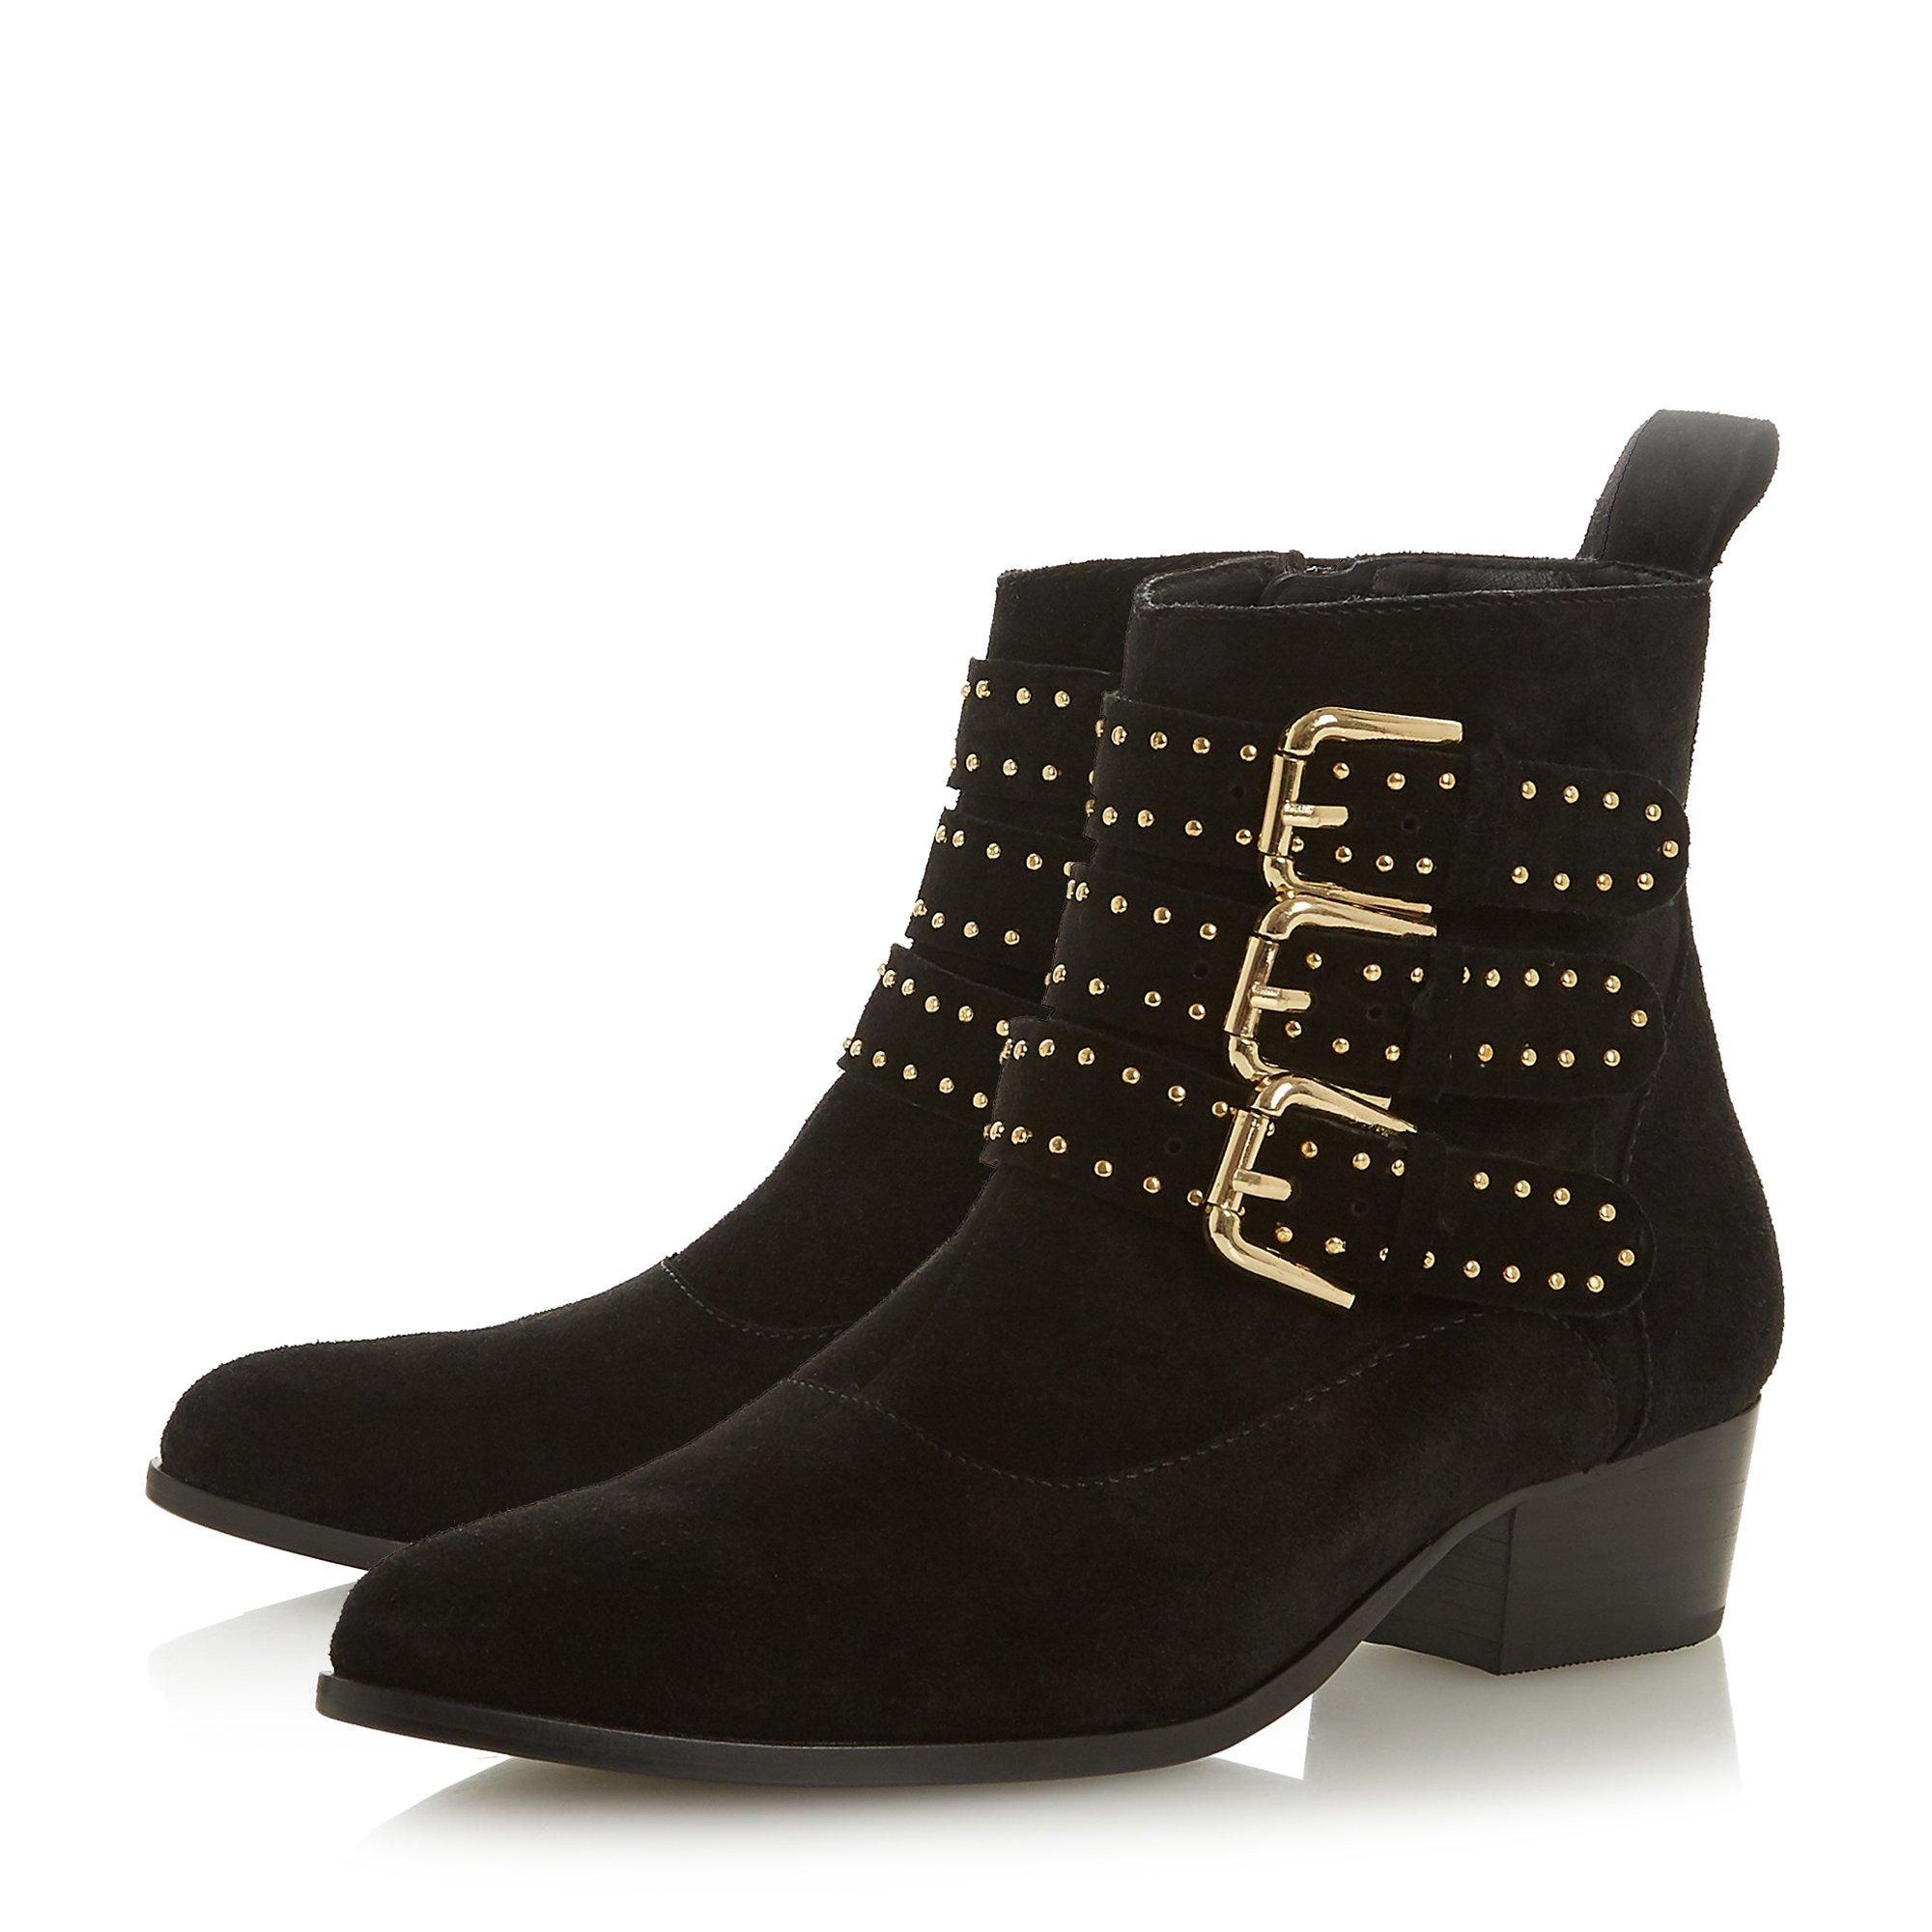 Dune Ladies PAGENT Buckle Detail Ankle Boots